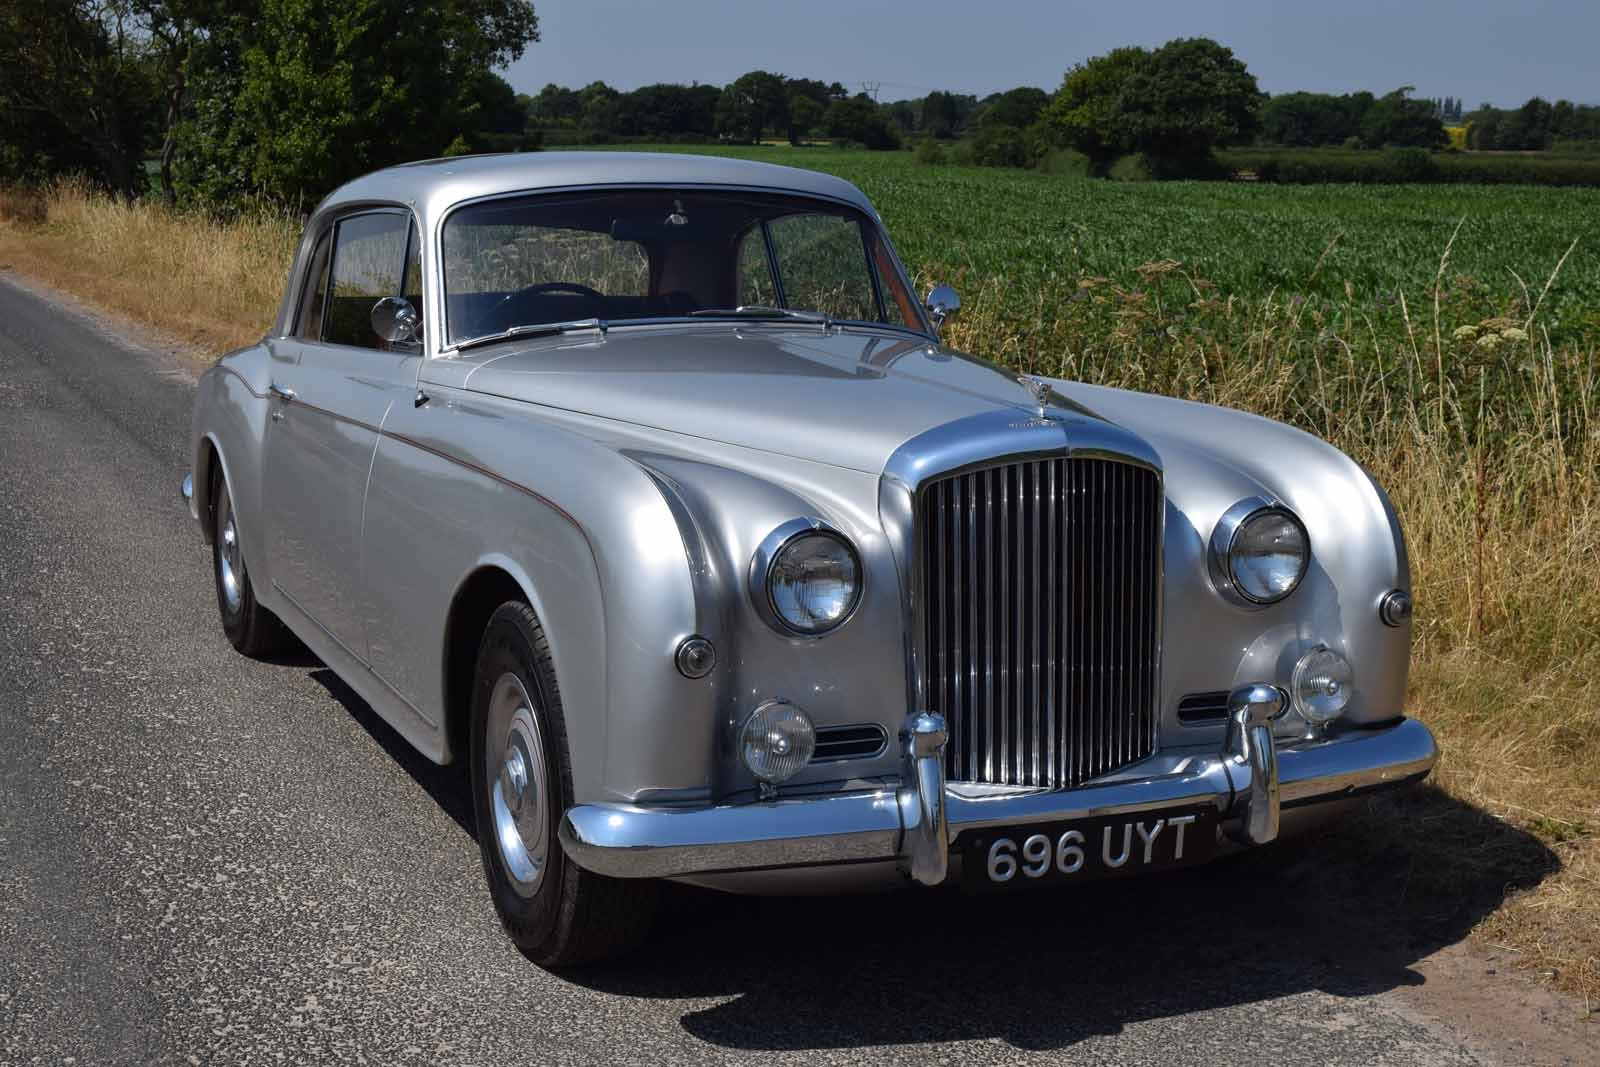 1957 Bentley S1 Continental Park Ward Coupe For Sale (picture 2 of 6)